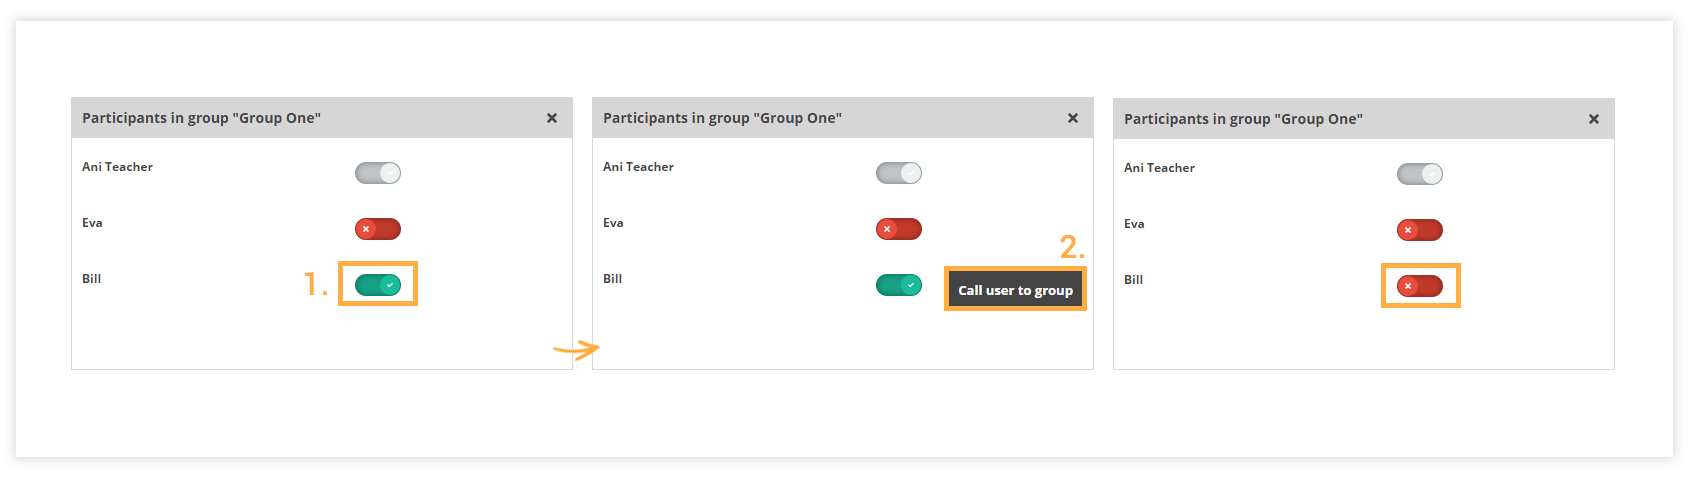 How to add, call, and remove participants from the group